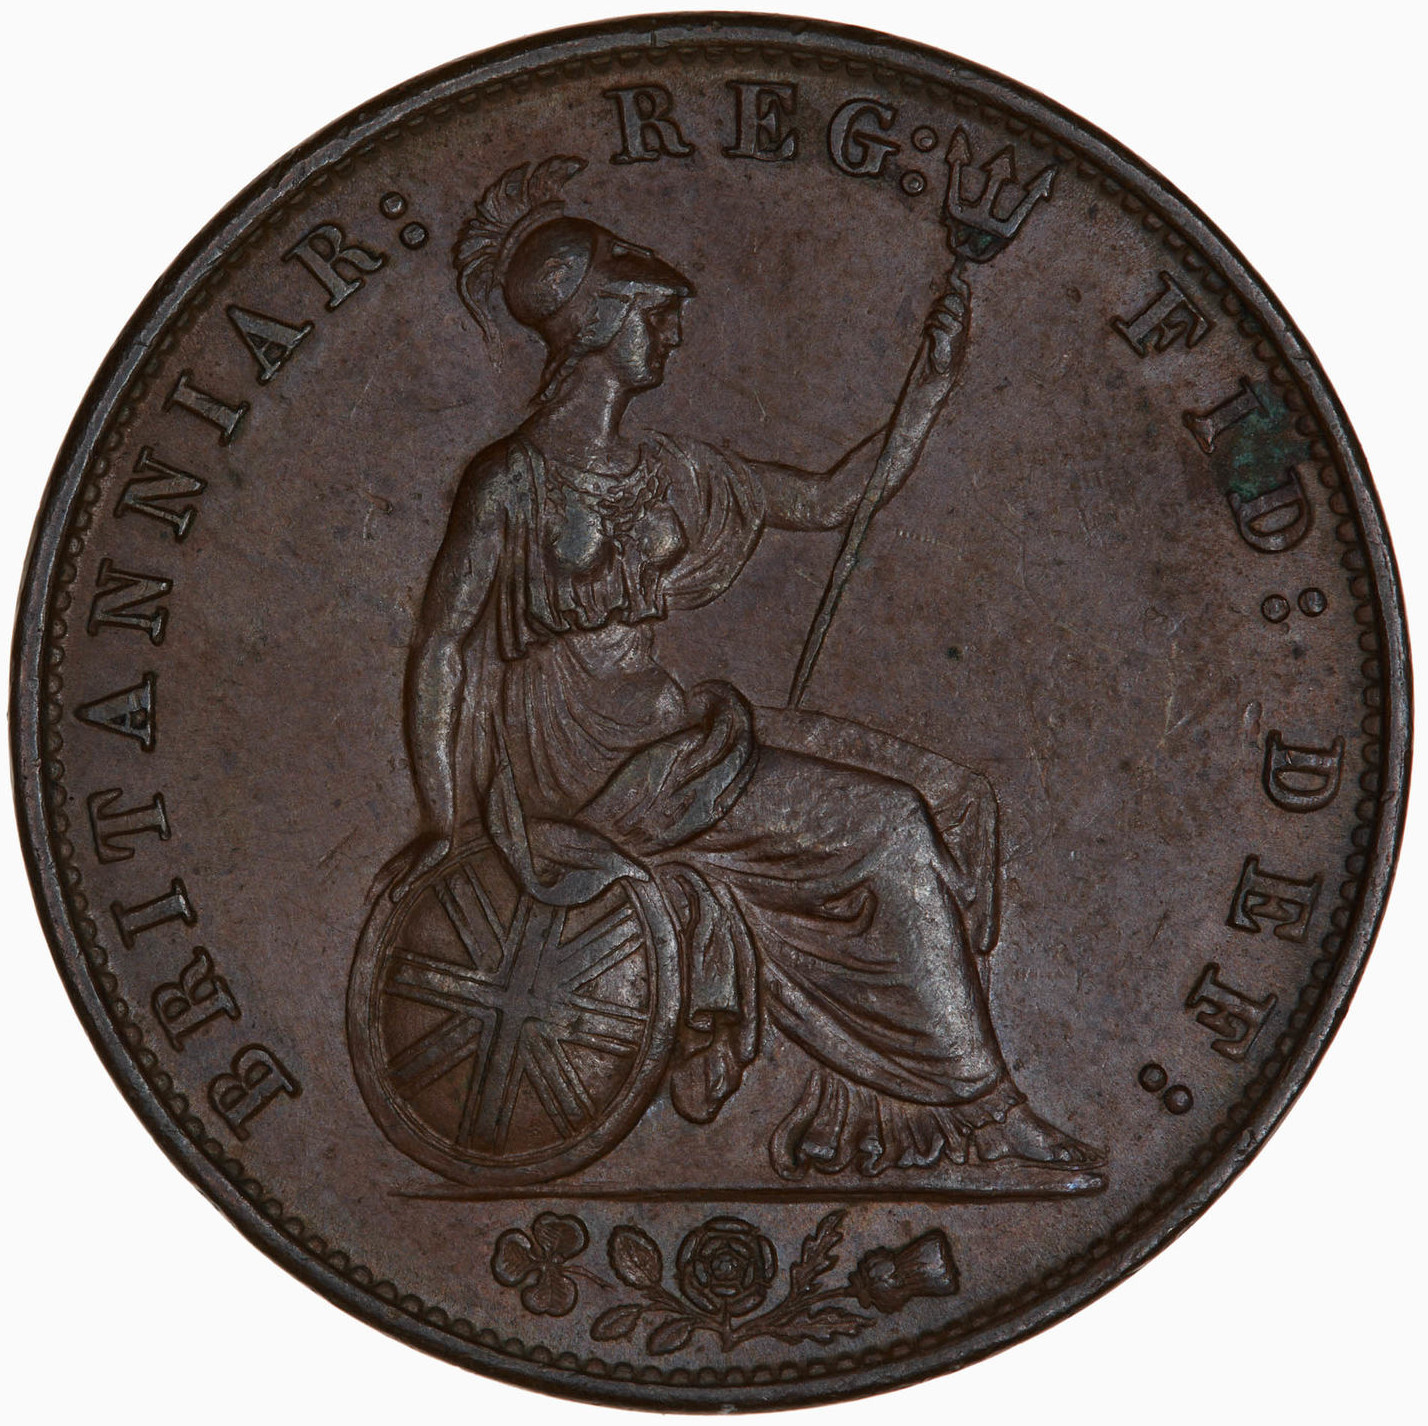 Halfpenny 1859: Photo Coin - Halfpenny, Queen Victoria, Great Britain, 1859